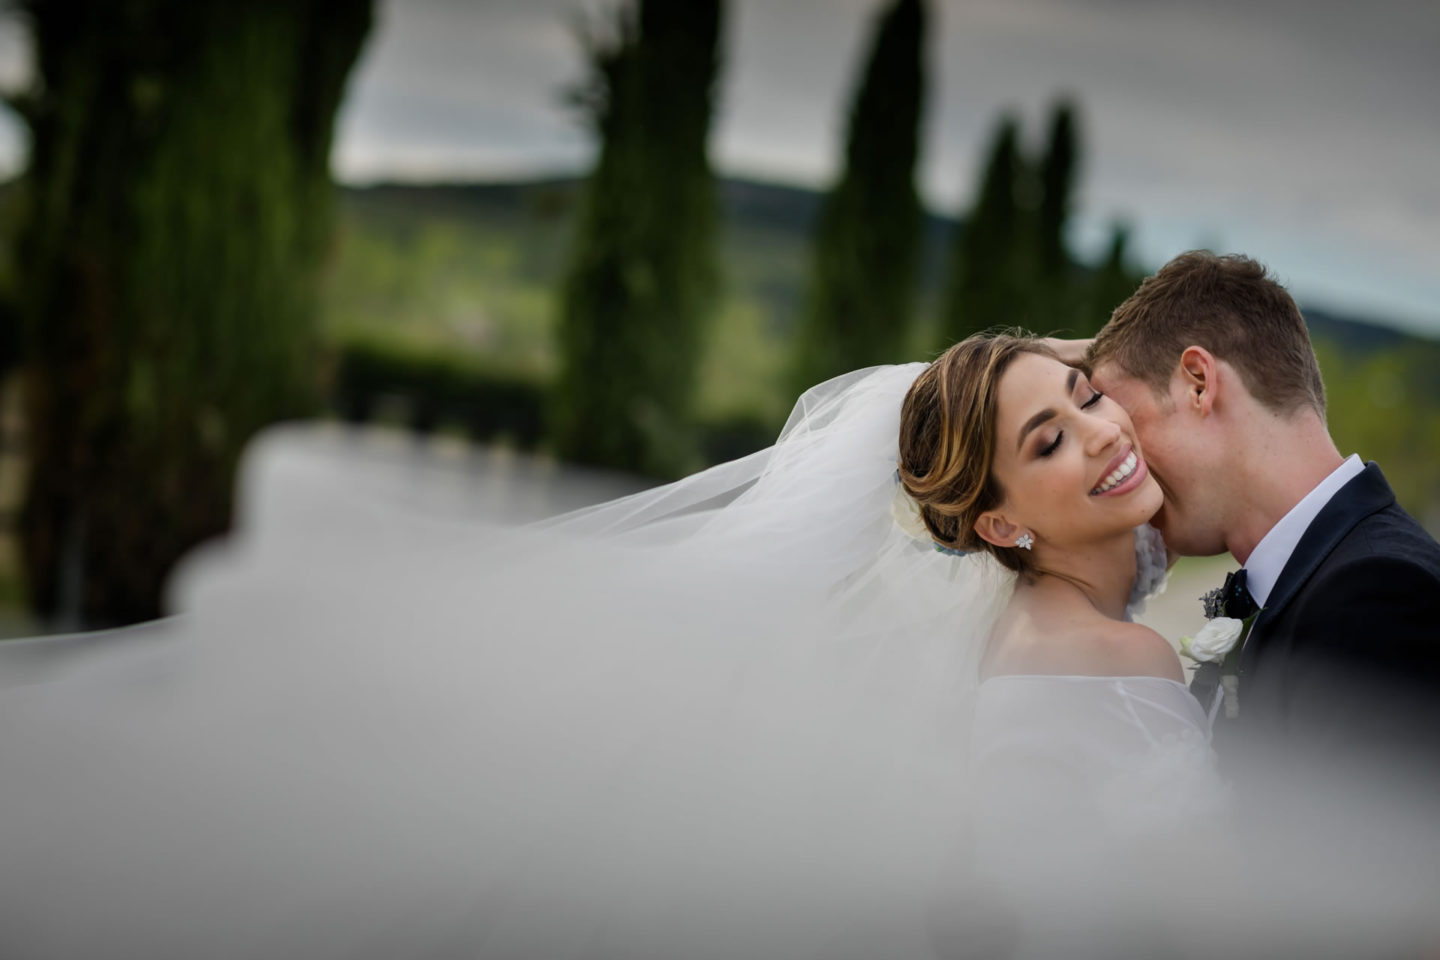 Green :: Amazing wedding day at Il Borro :: Luxury wedding photography - 21 :: Green